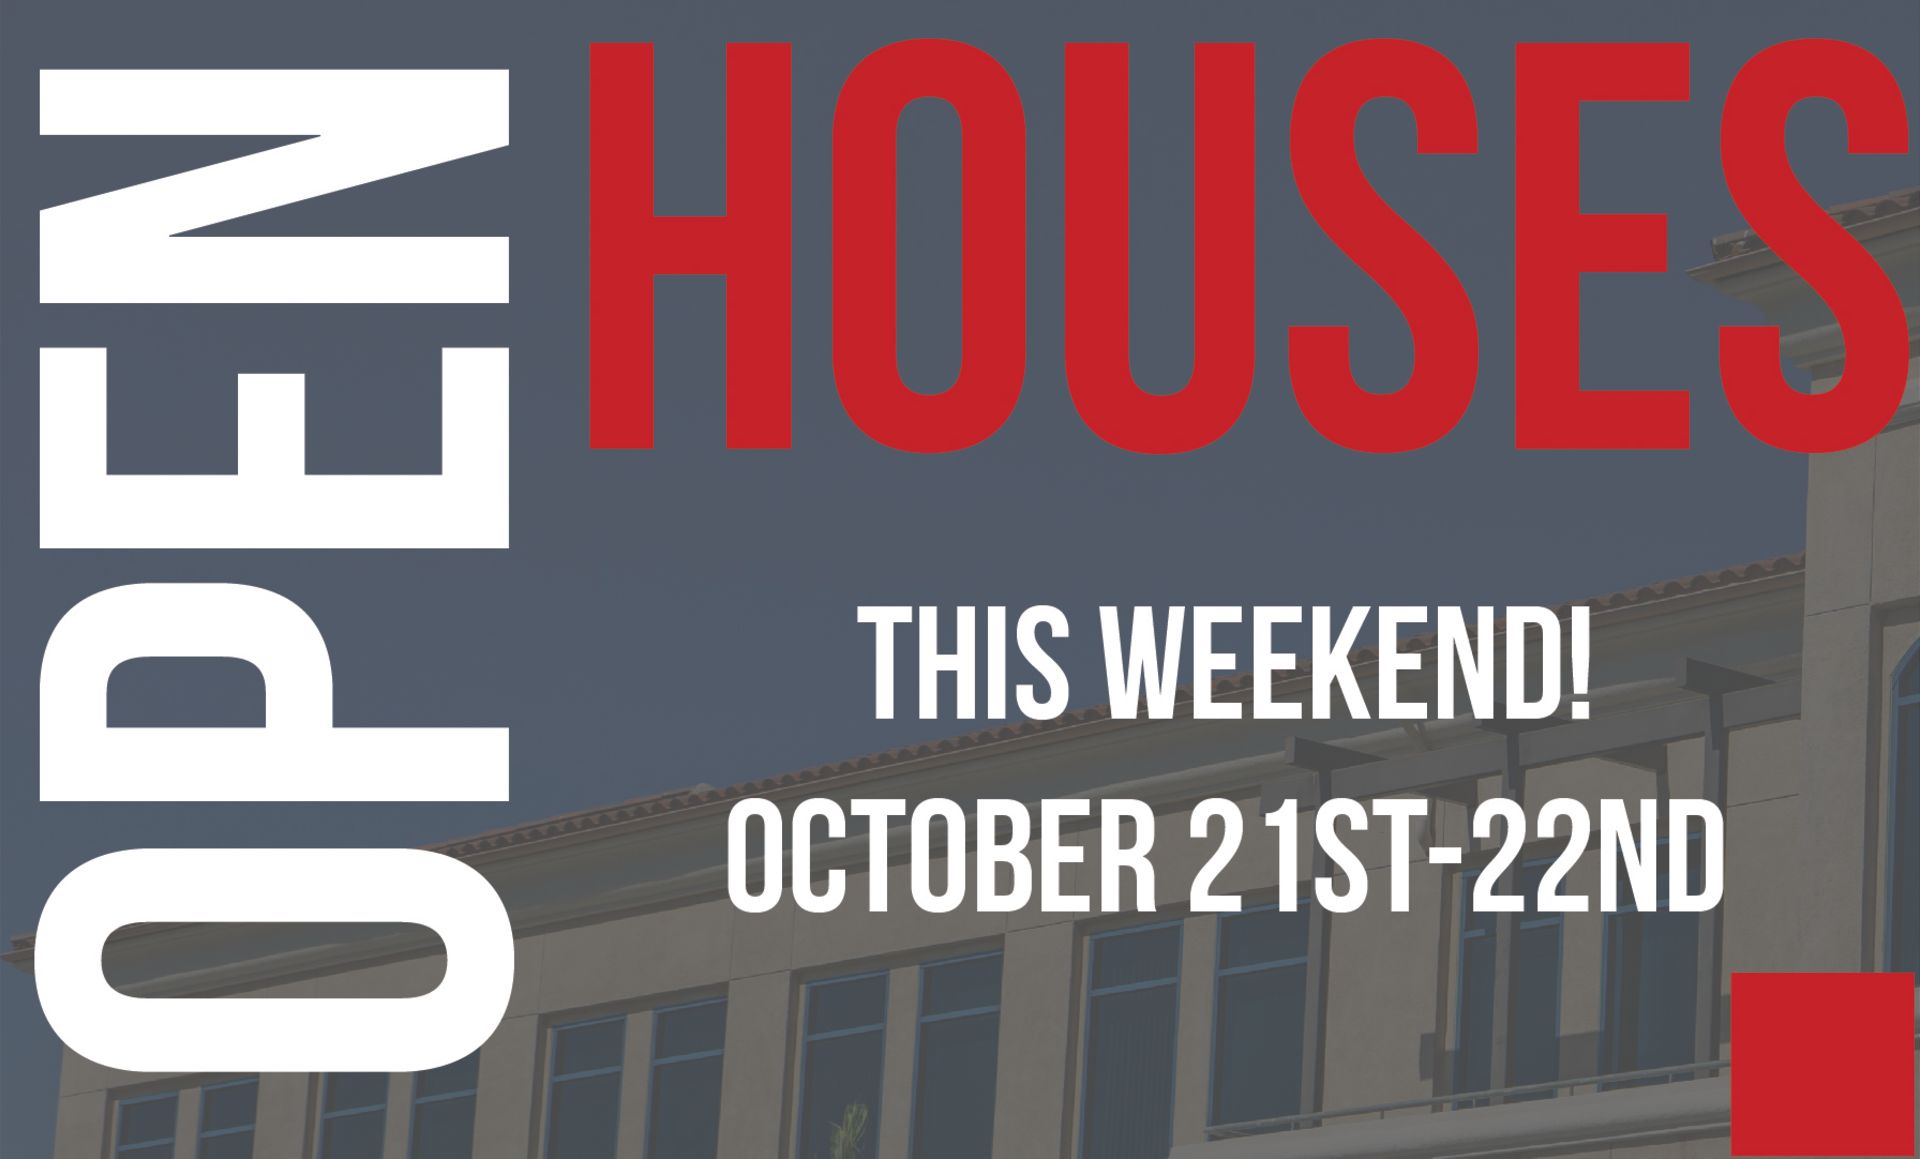 Open Houses This Weekend! Oct. 21st-22nd